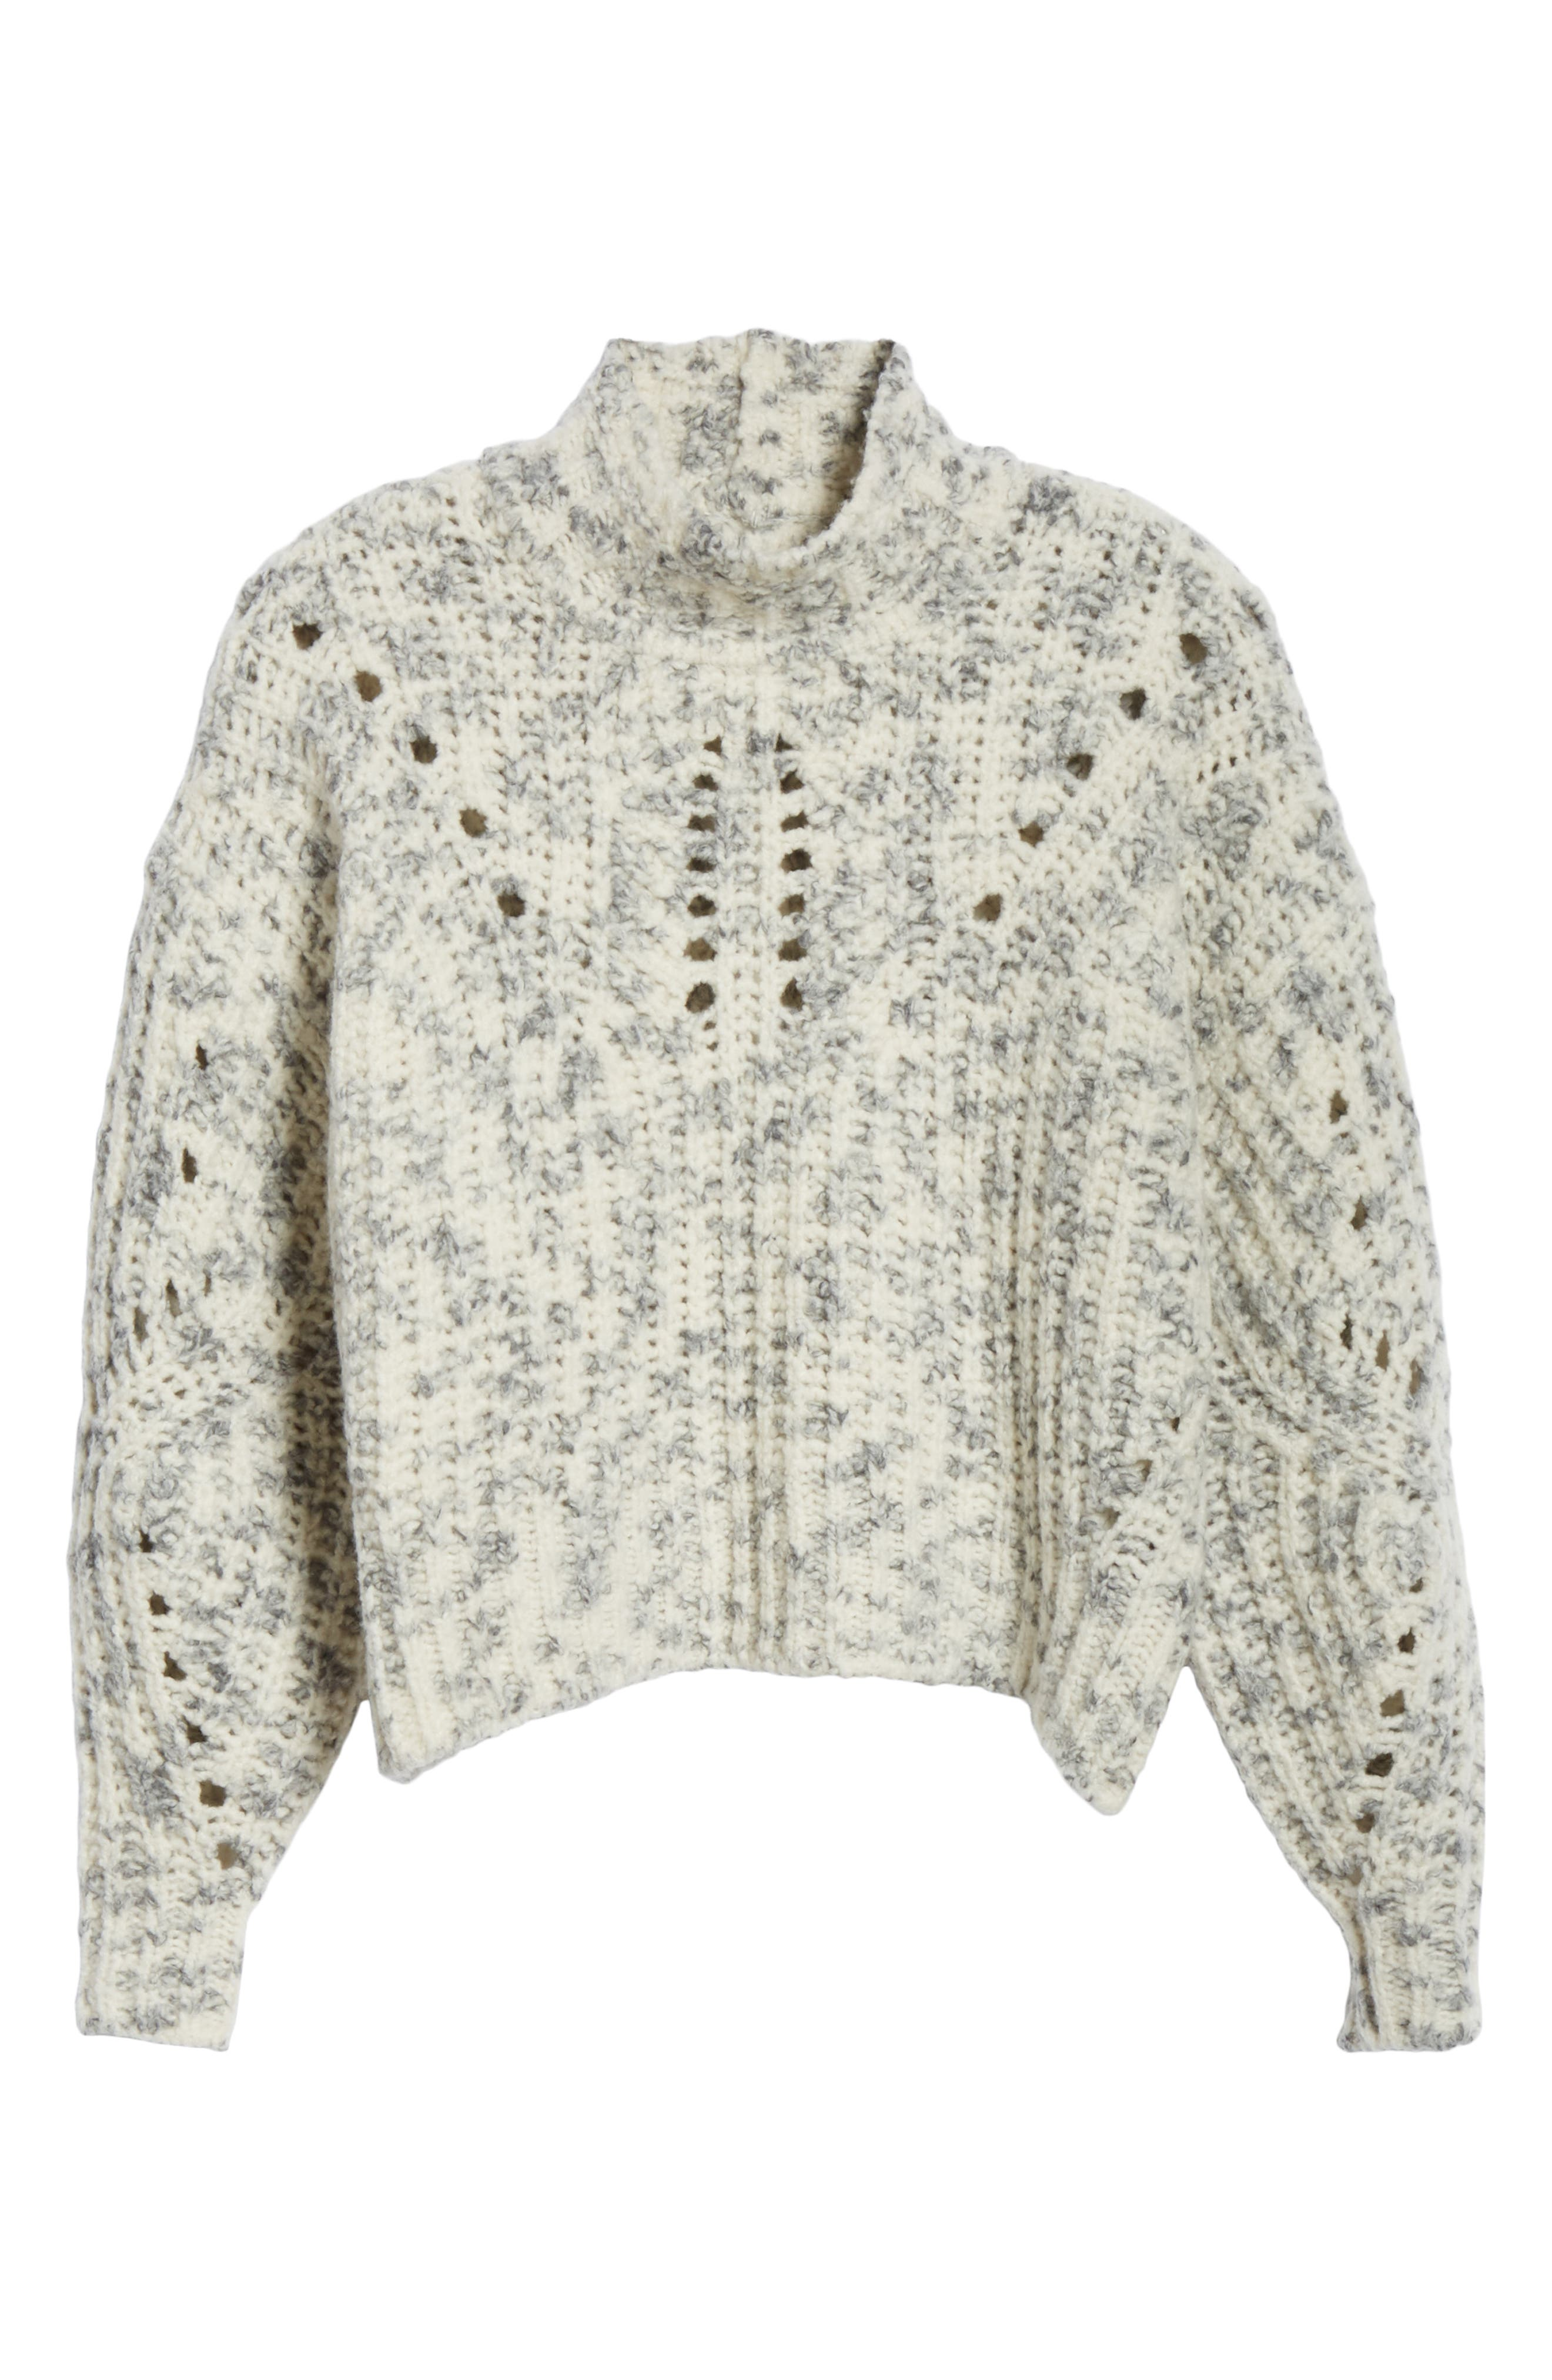 Jilly Wool Sweater,                             Alternate thumbnail 6, color,                             900